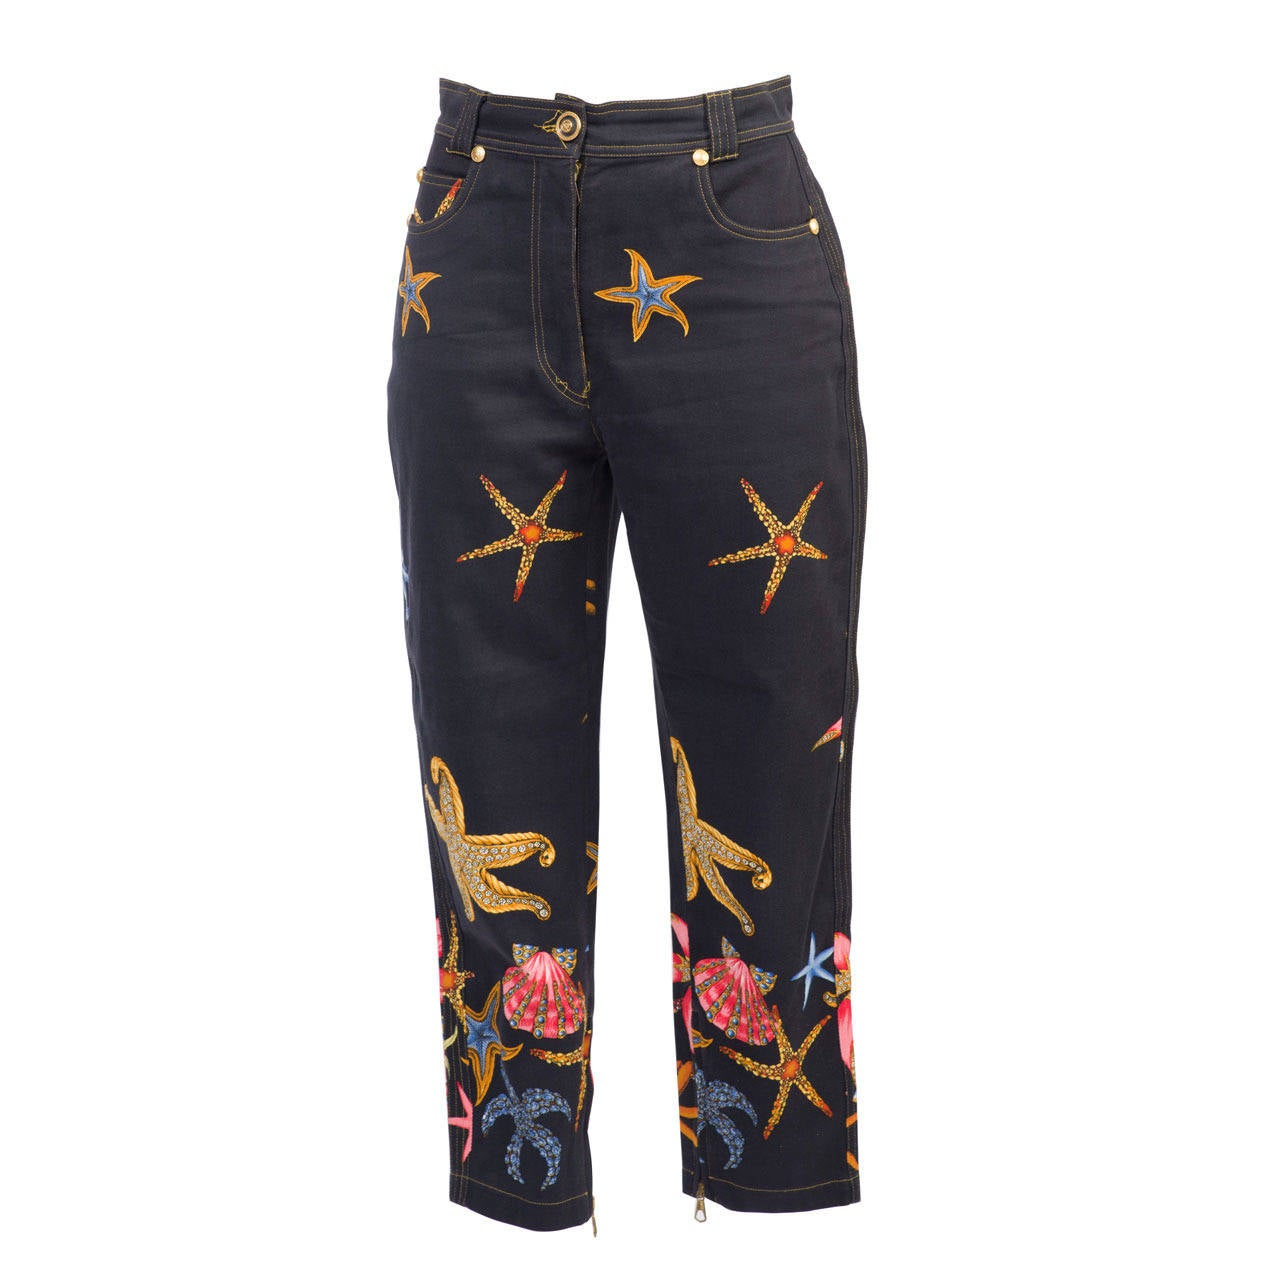 1990s Gianni Versace Vintage Iconic Trousers 1